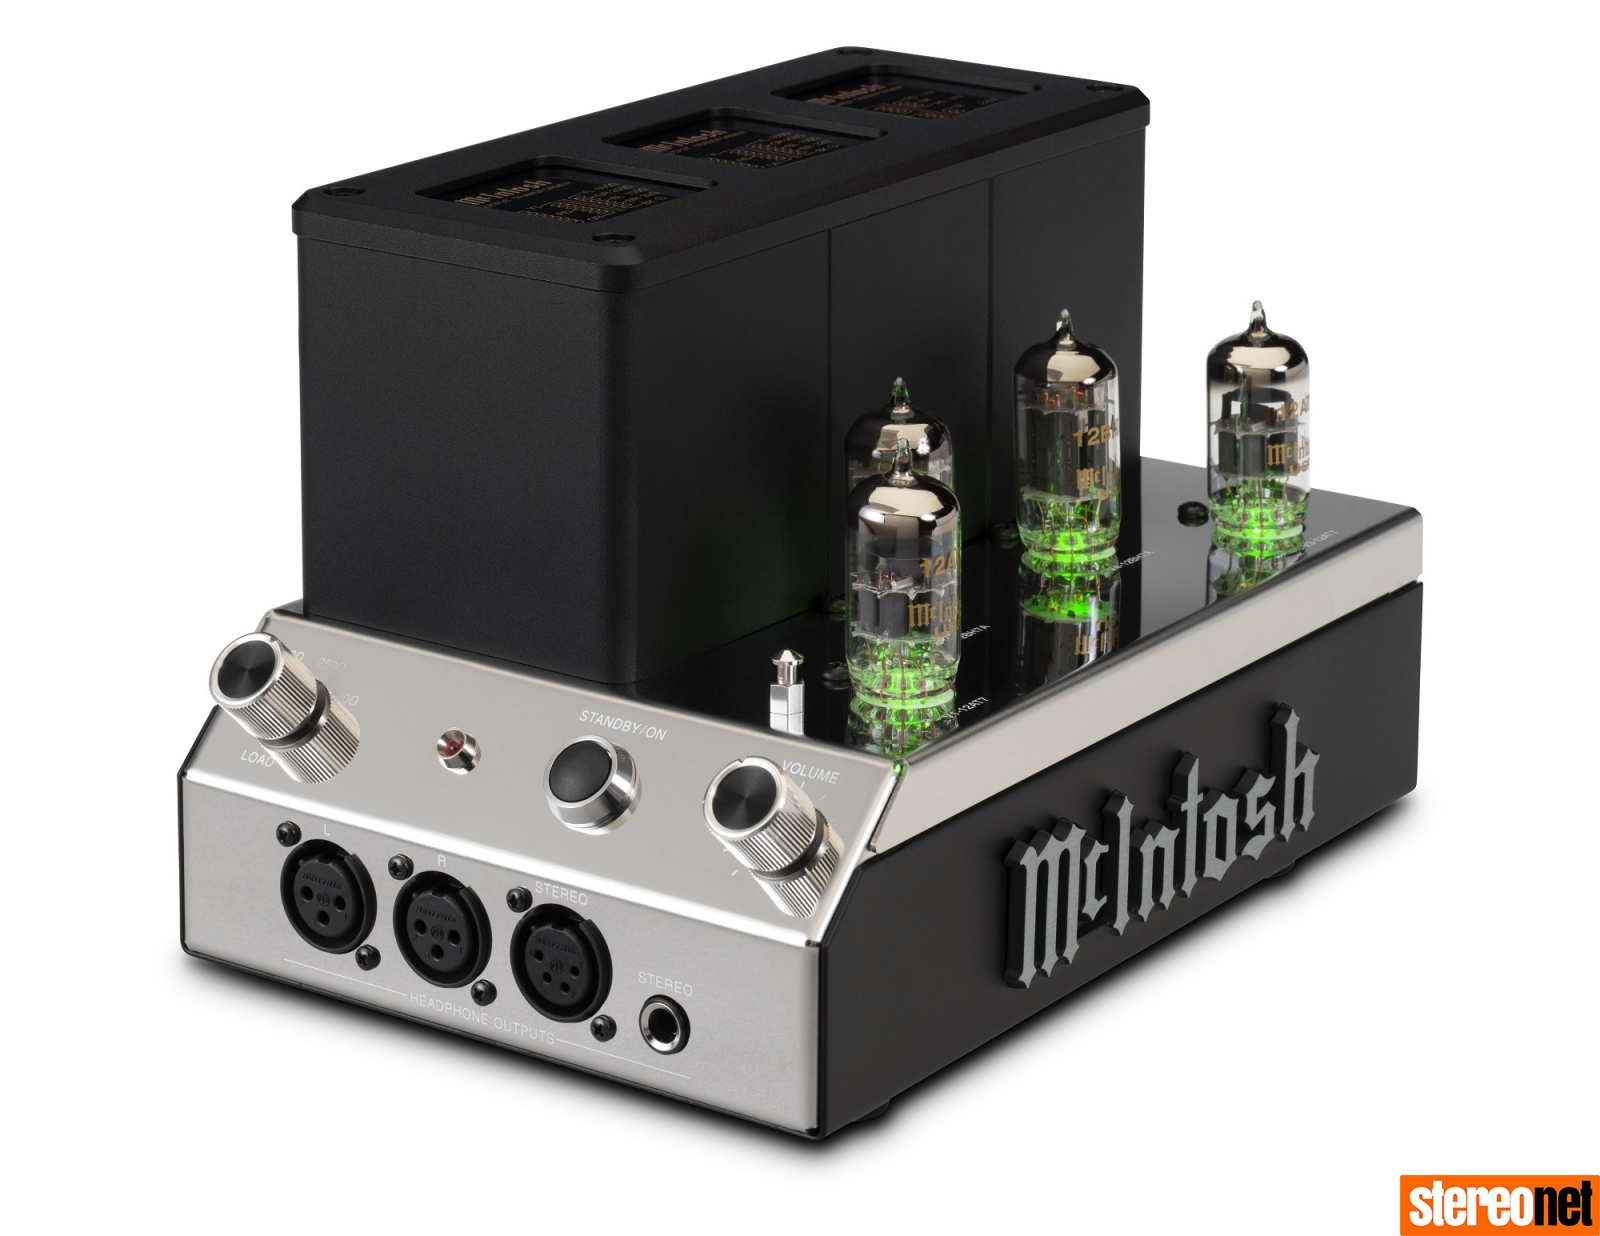 McIntosh MHA200 headphone amplifier